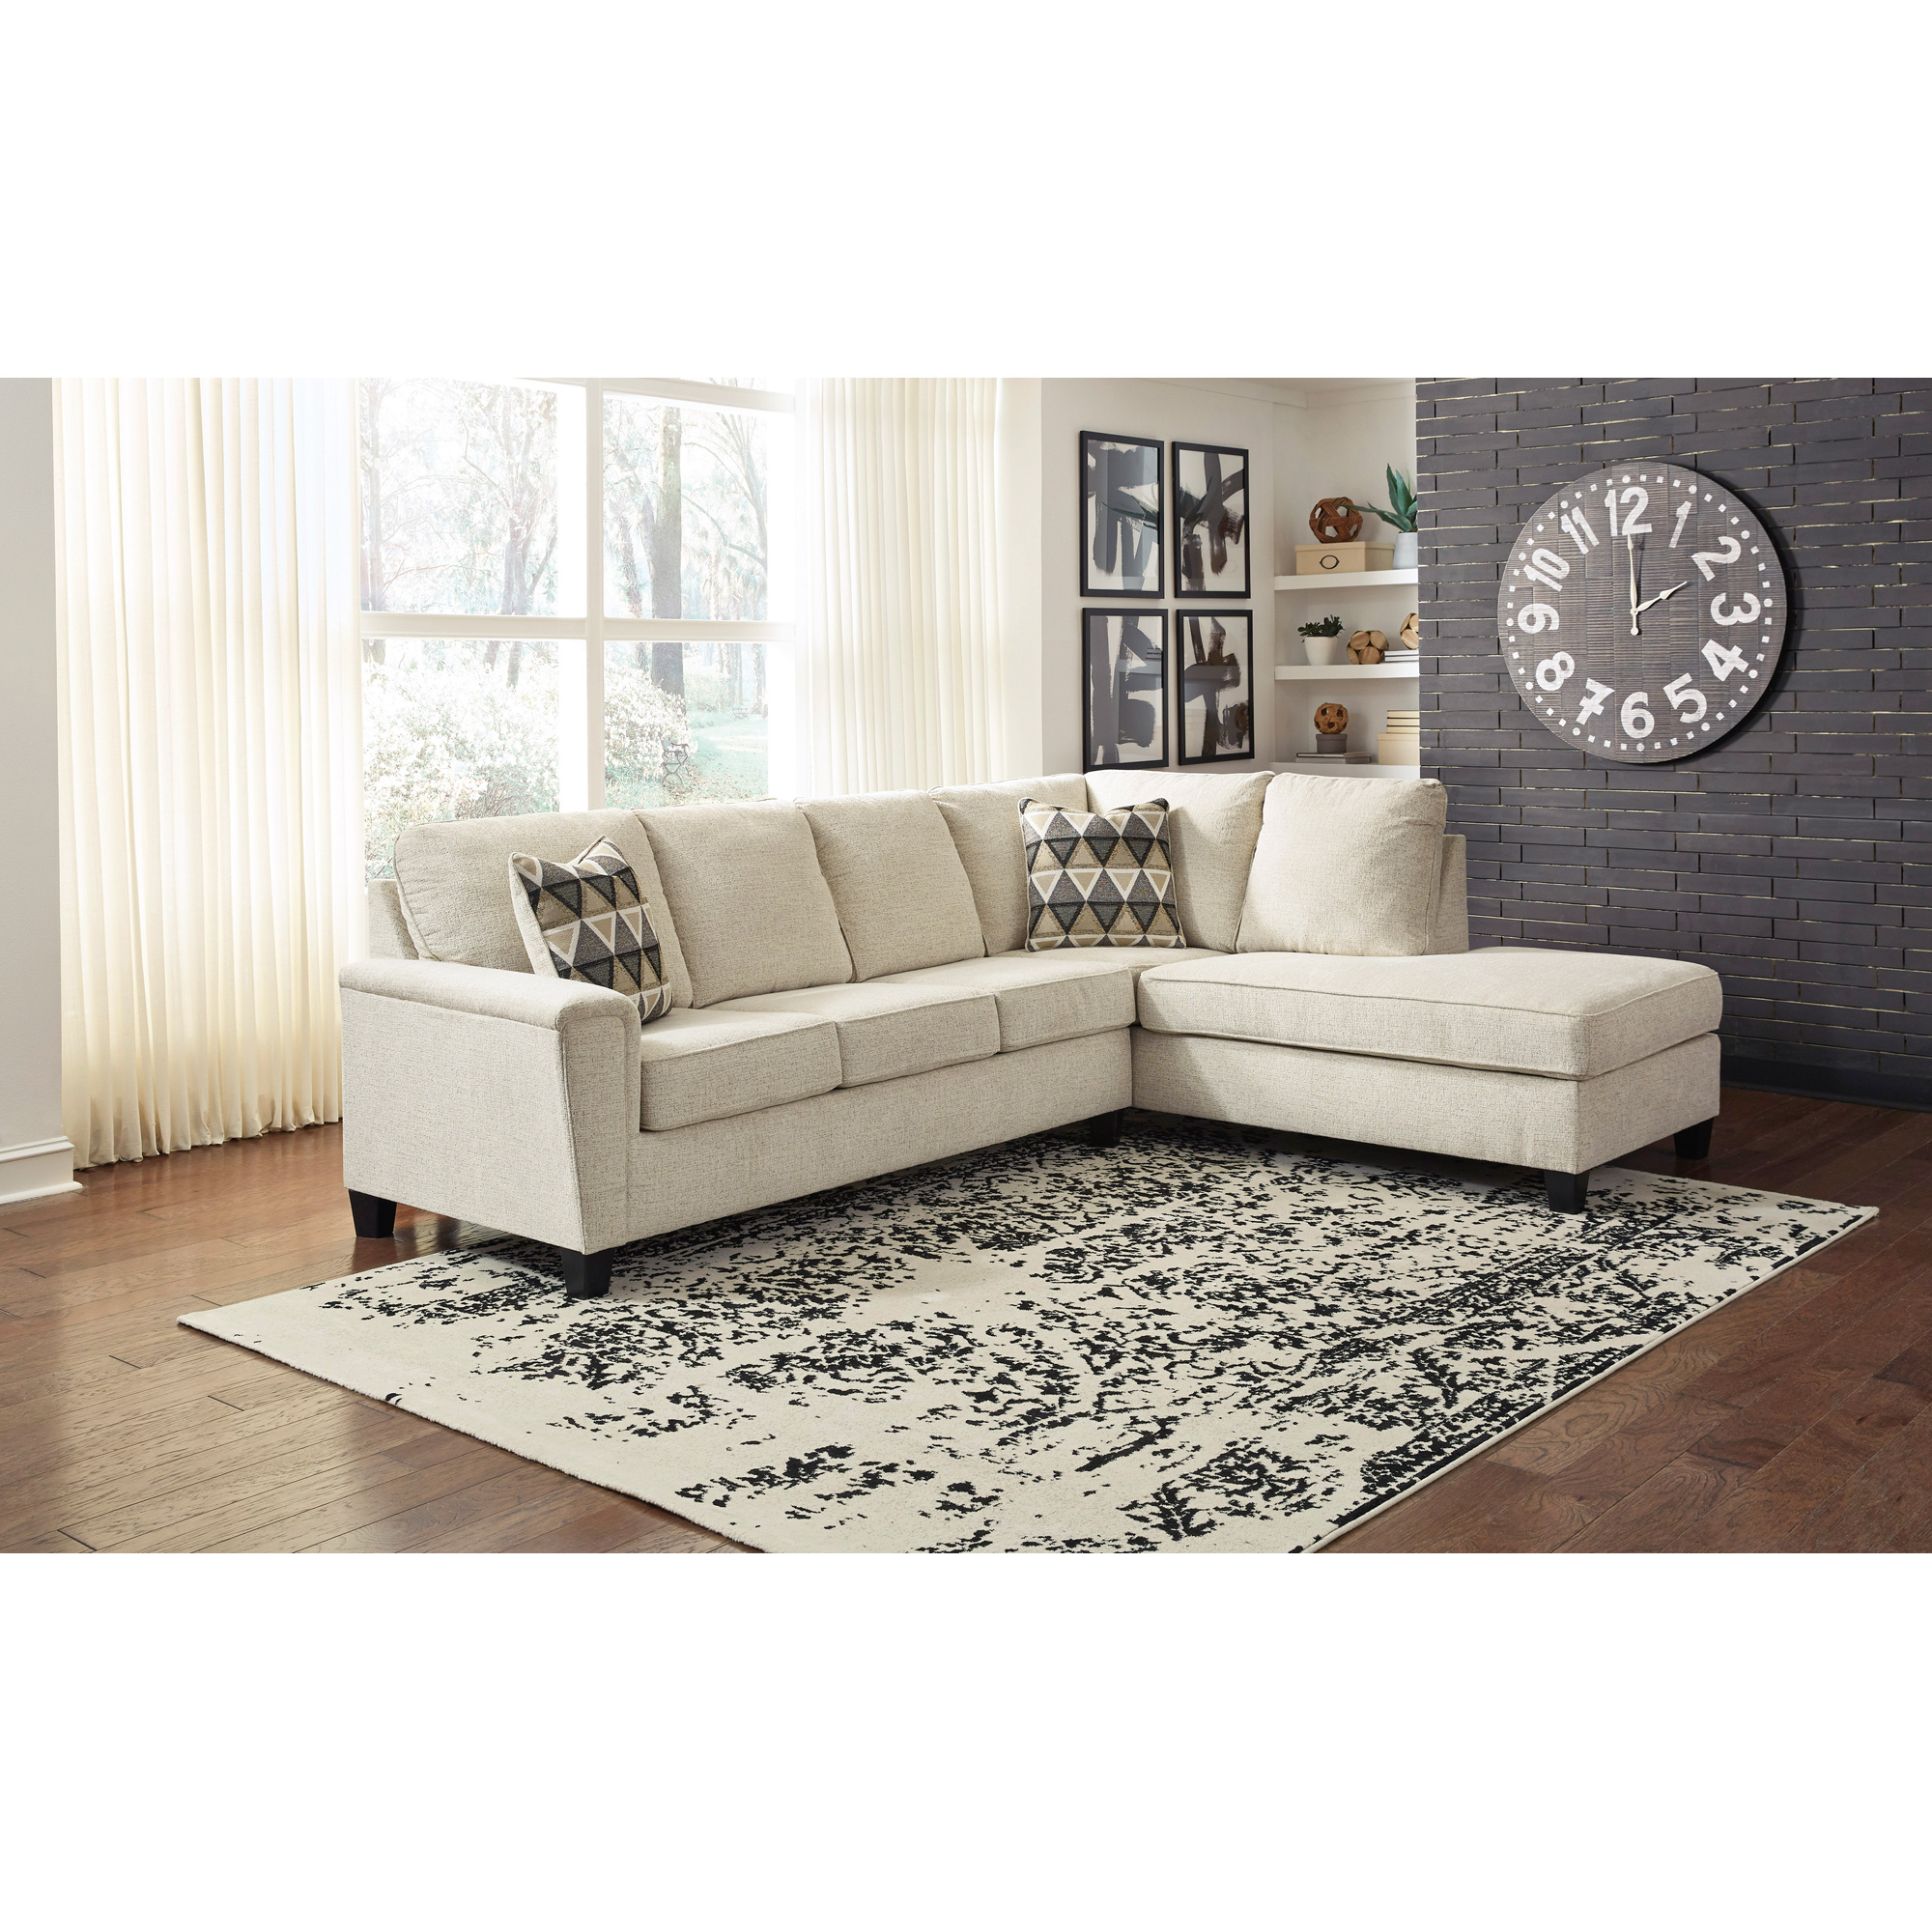 Ashley Furniture | Abinger Natural Right Chaise Sectional Sofa